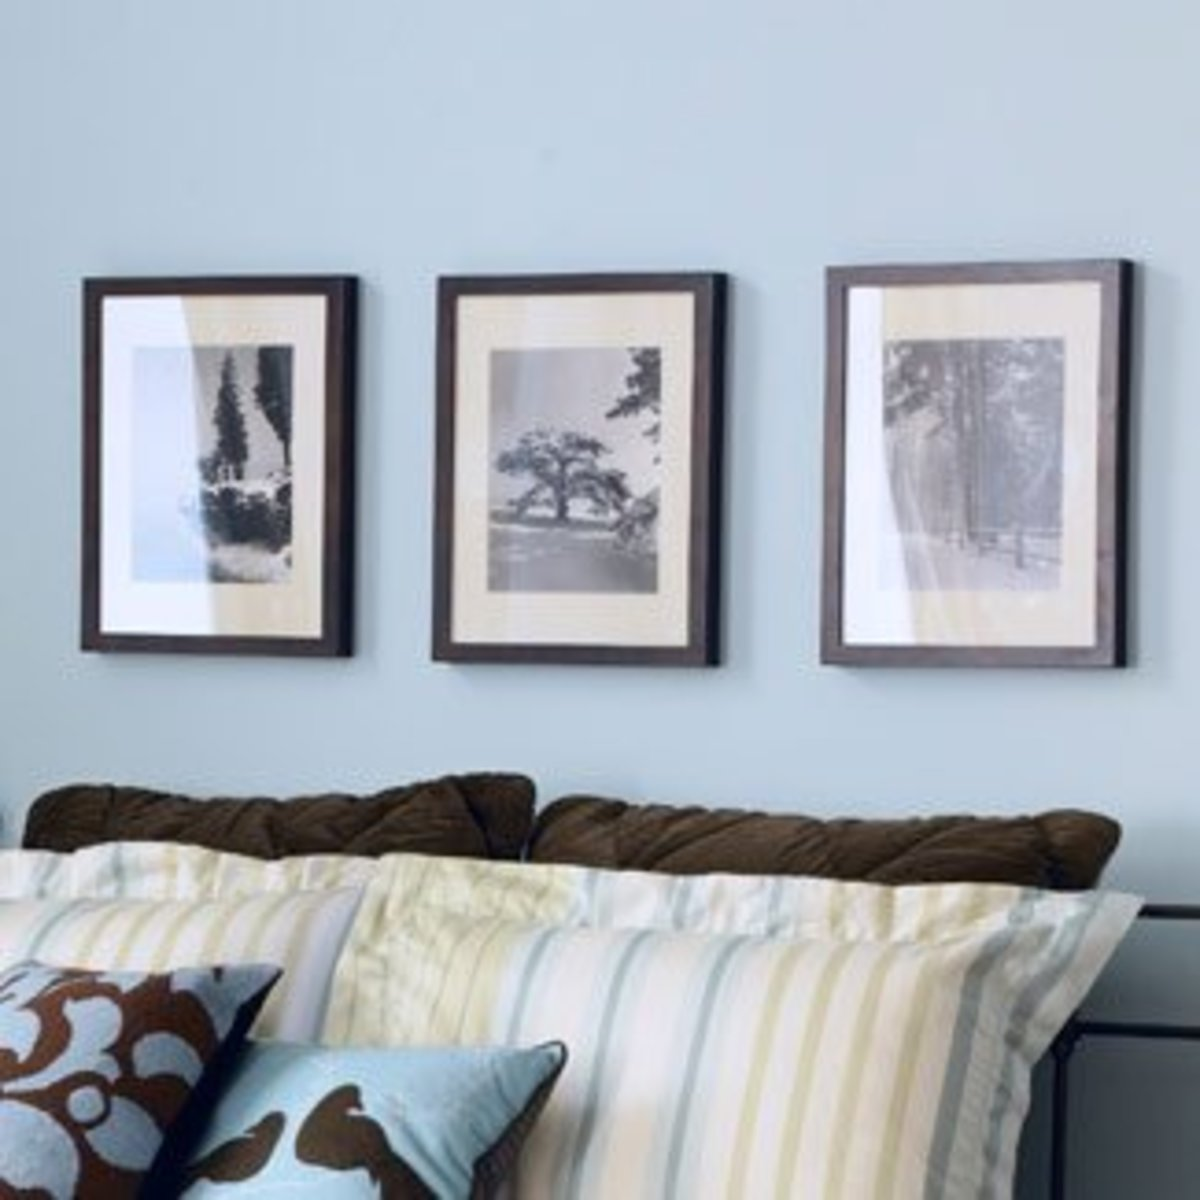 A simple picture hanging idea using three framed pictures/paintings, all set out in a straight line.